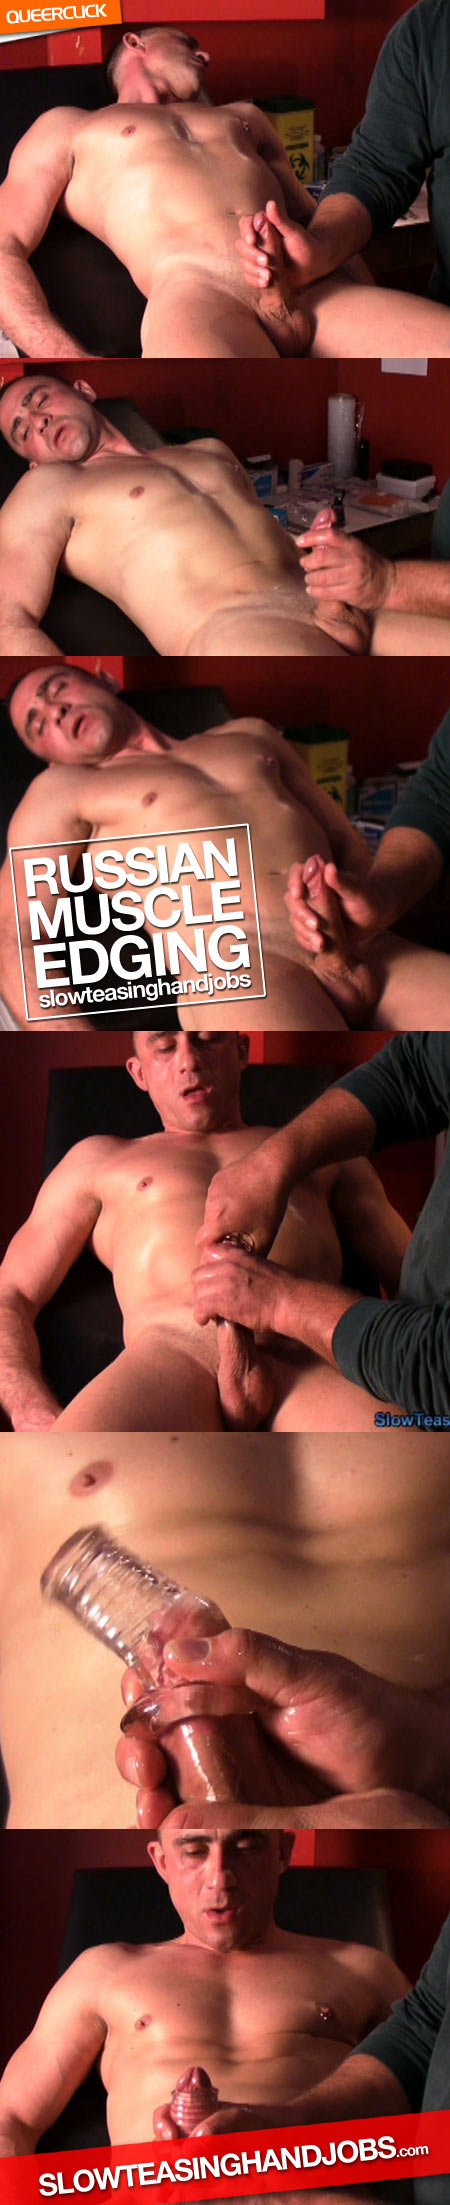 Slow Teasing Hand Jobs: Russian Muscle Edging